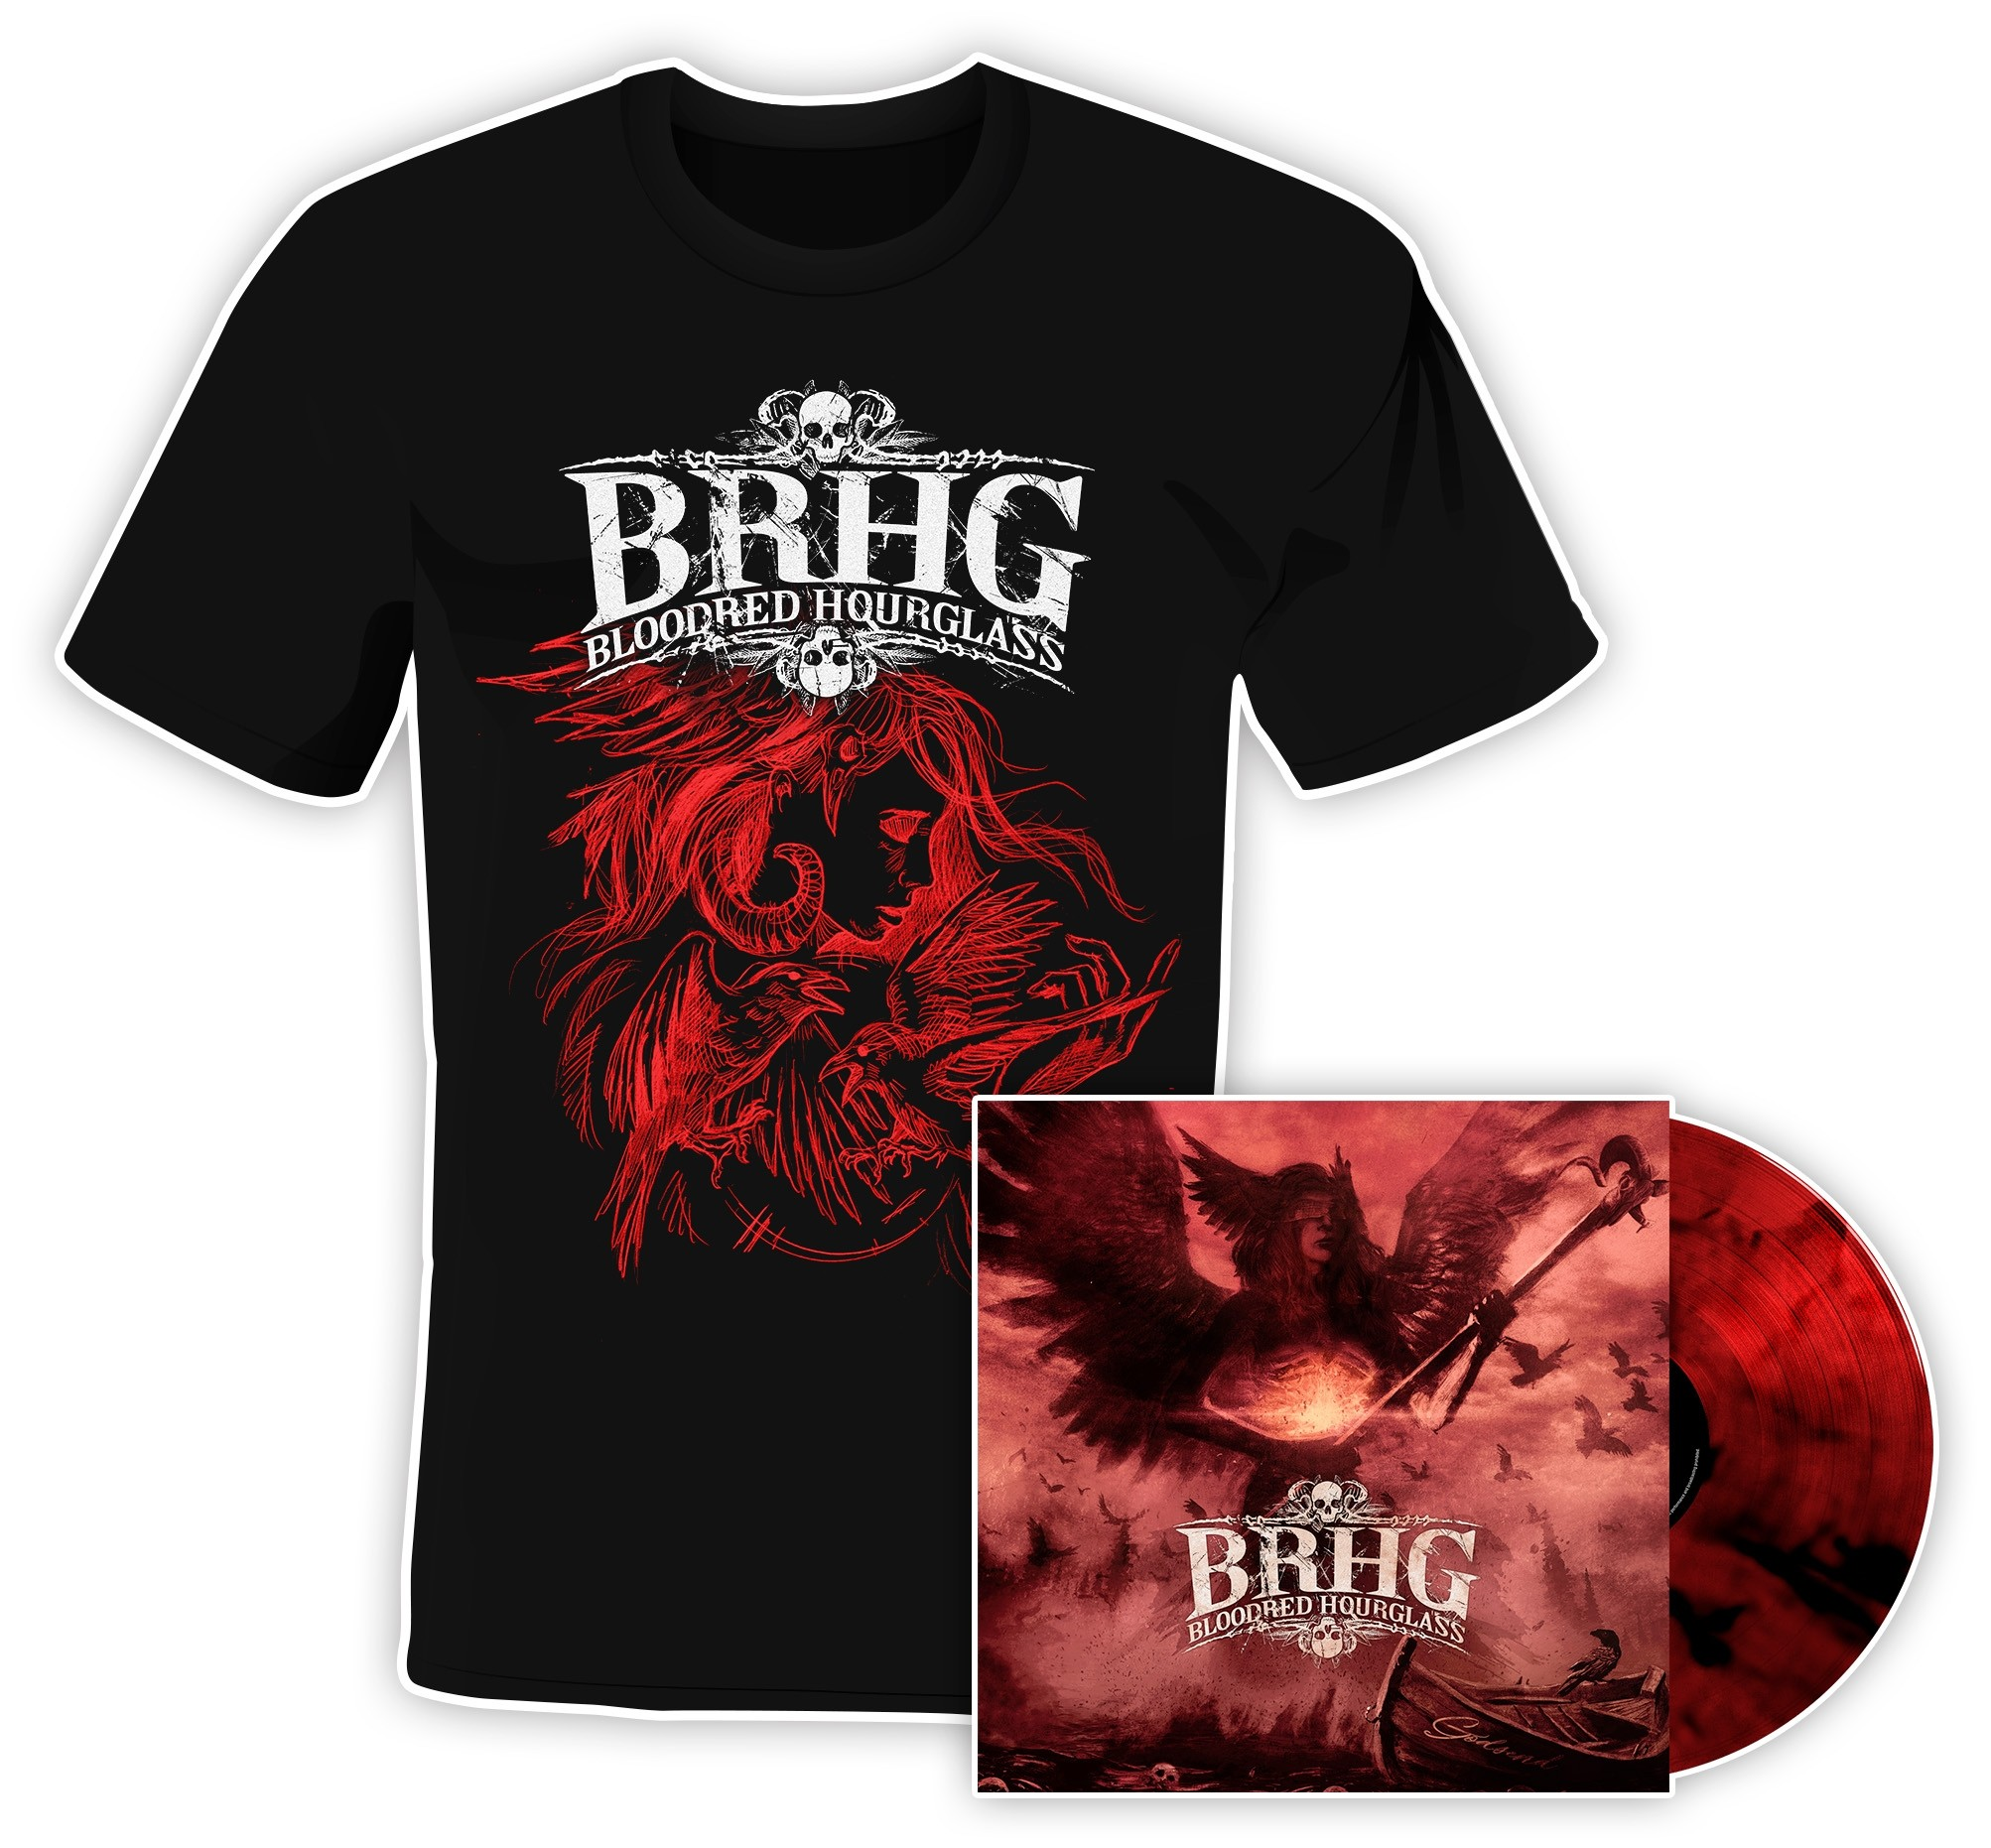 Bloodred Hourglass - Godsend - LP/T-Shirt Bundle